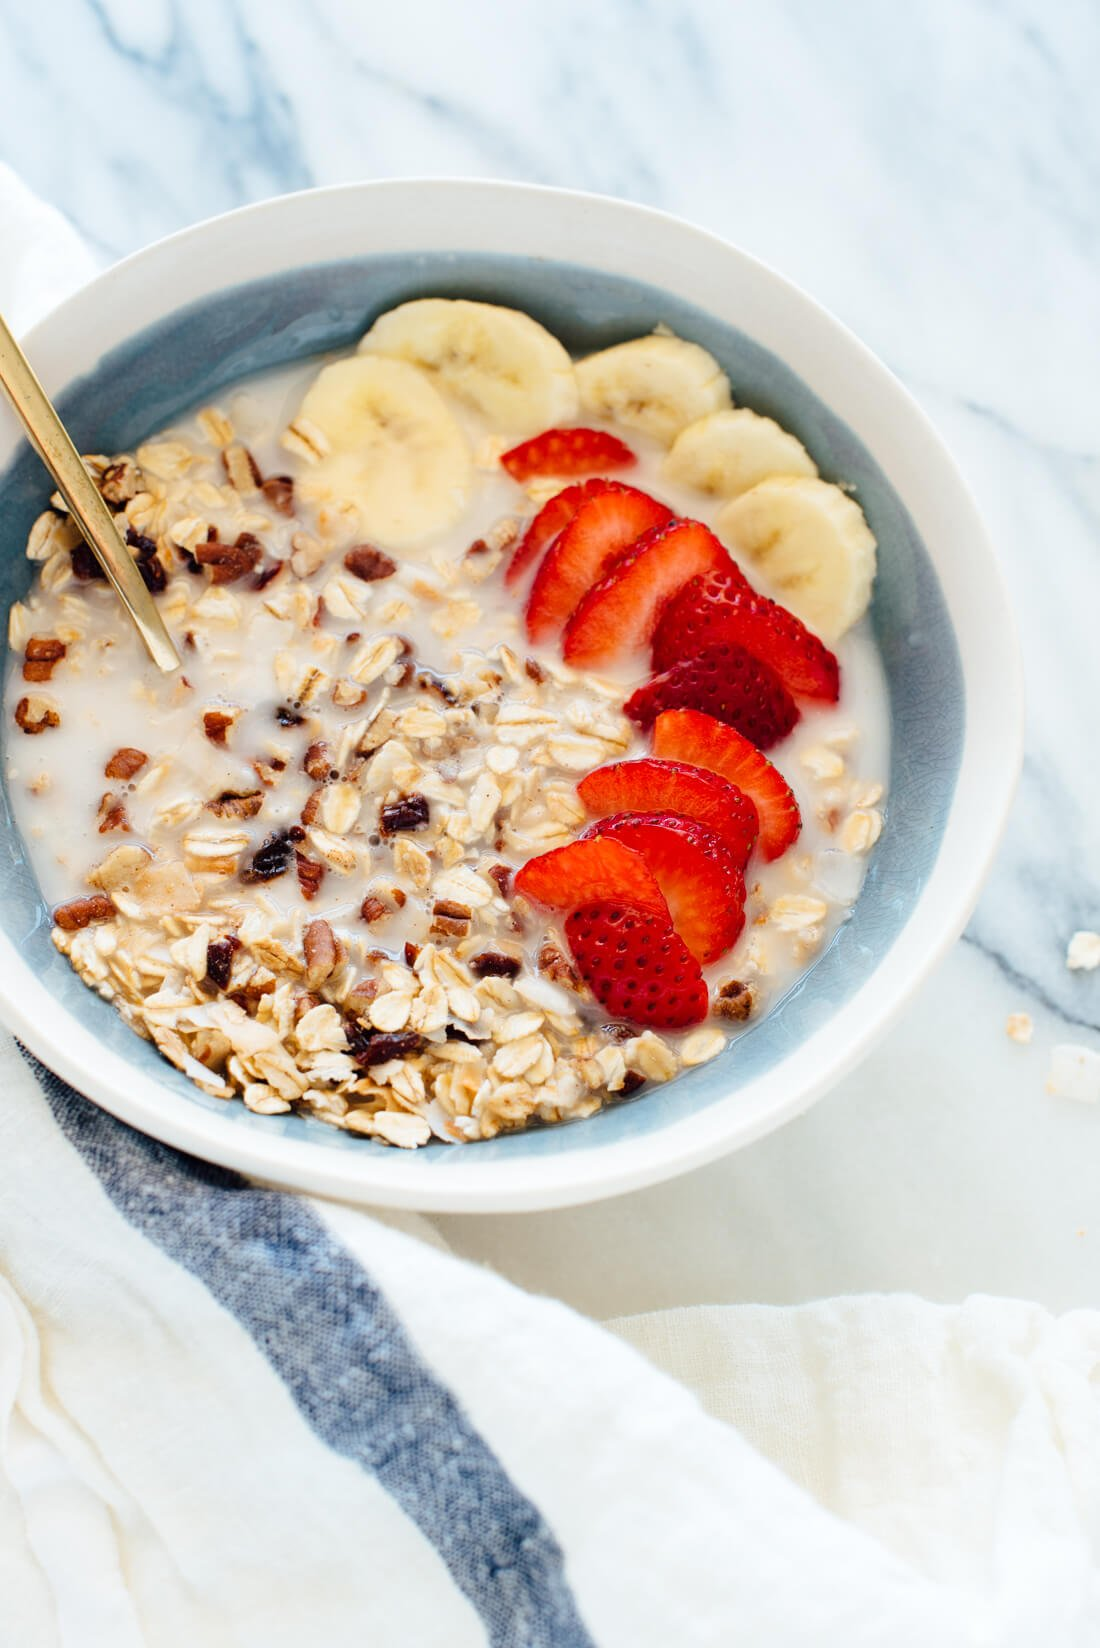 This healthy homemade muesli is absolutely delicious! It's made with oats, pecans, coconut, dried cherries, and a touch of maple syrup and vanilla.